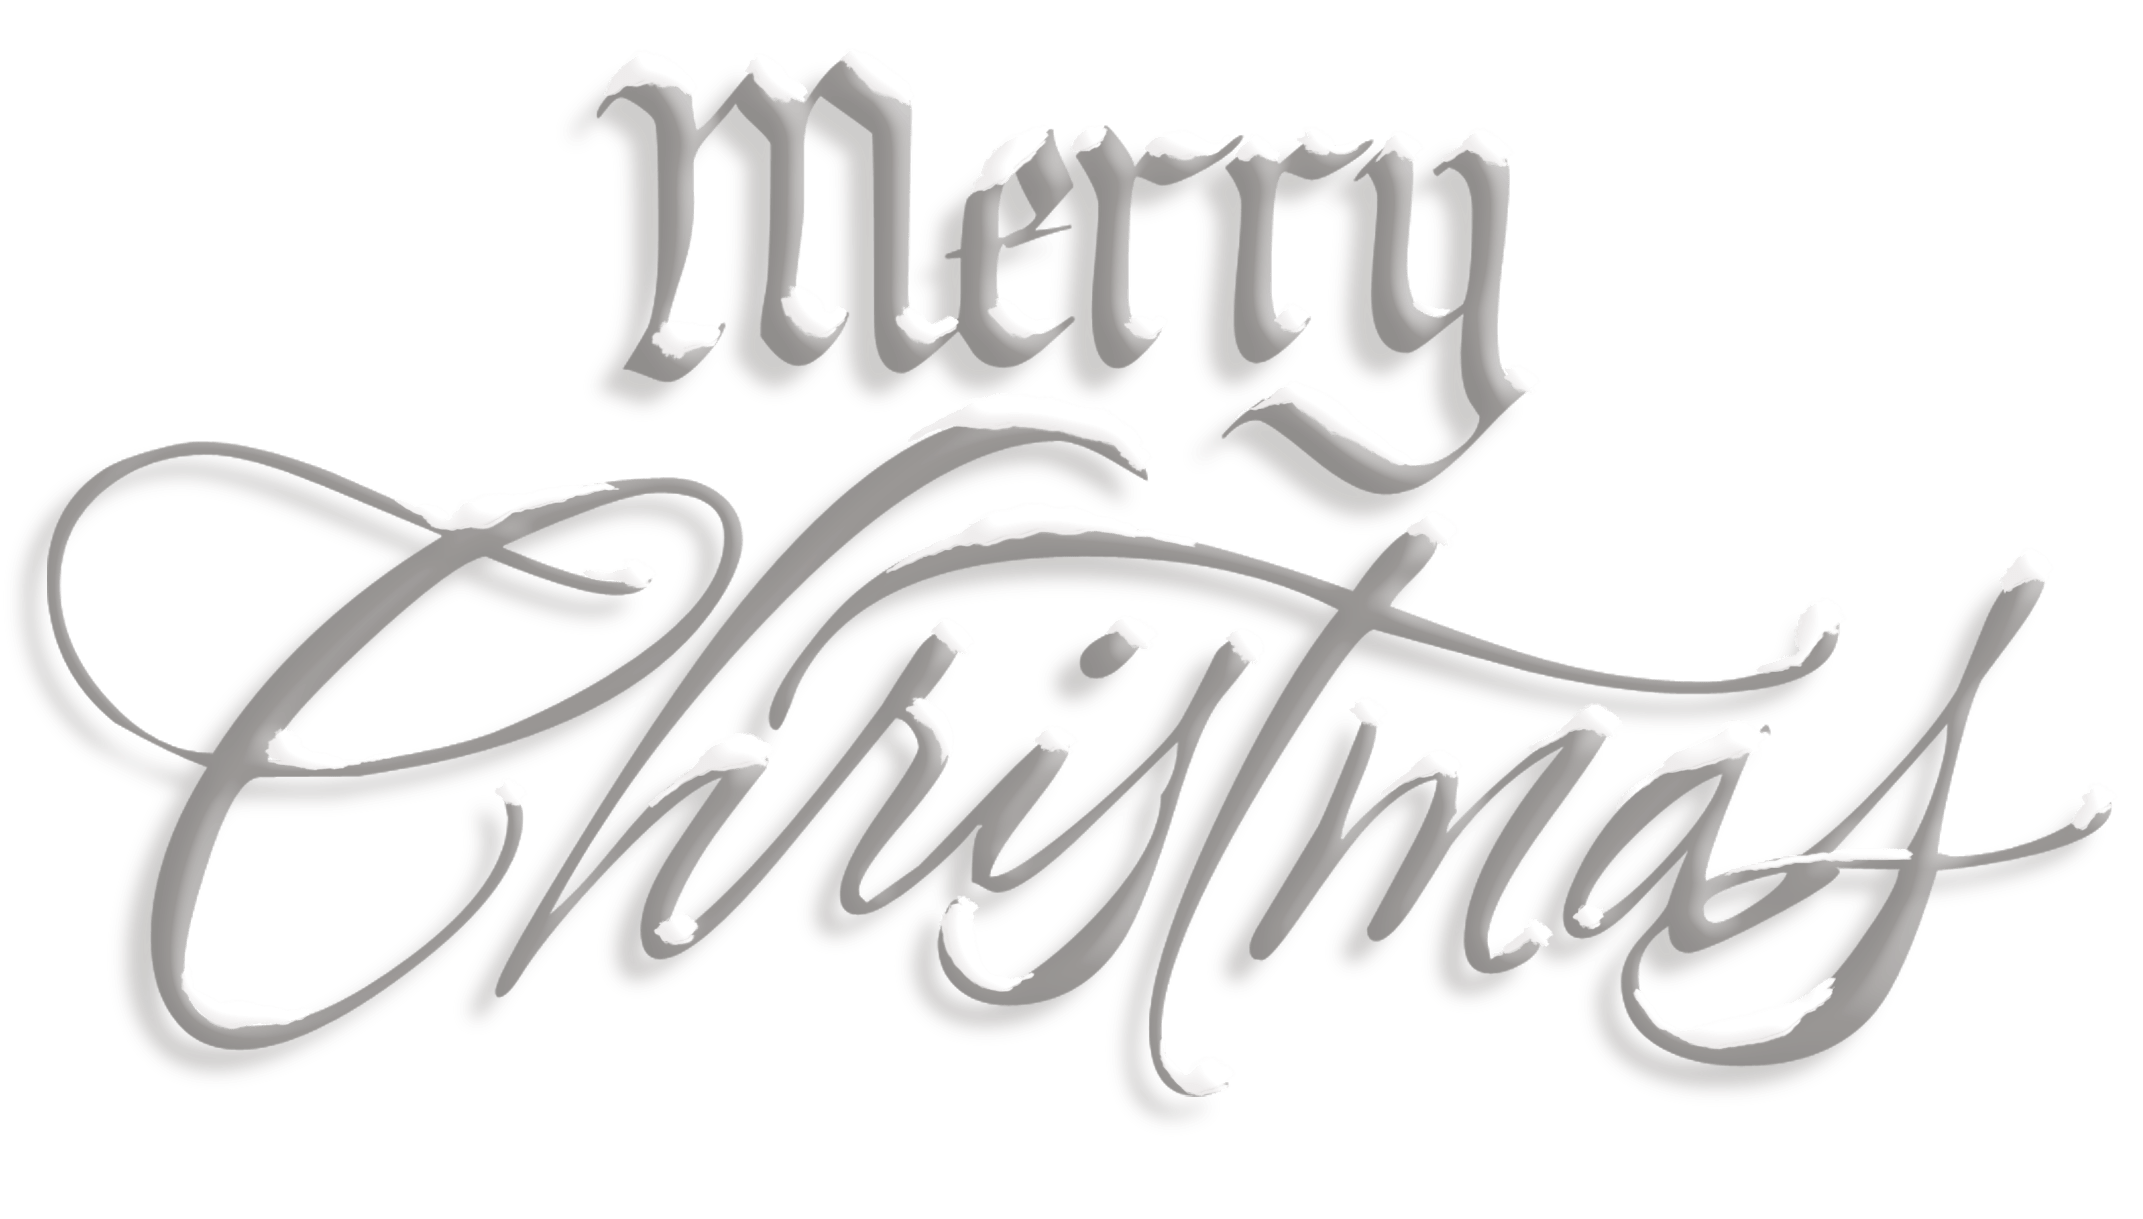 Merry Christmas Silver Snow Text transparent PNG.